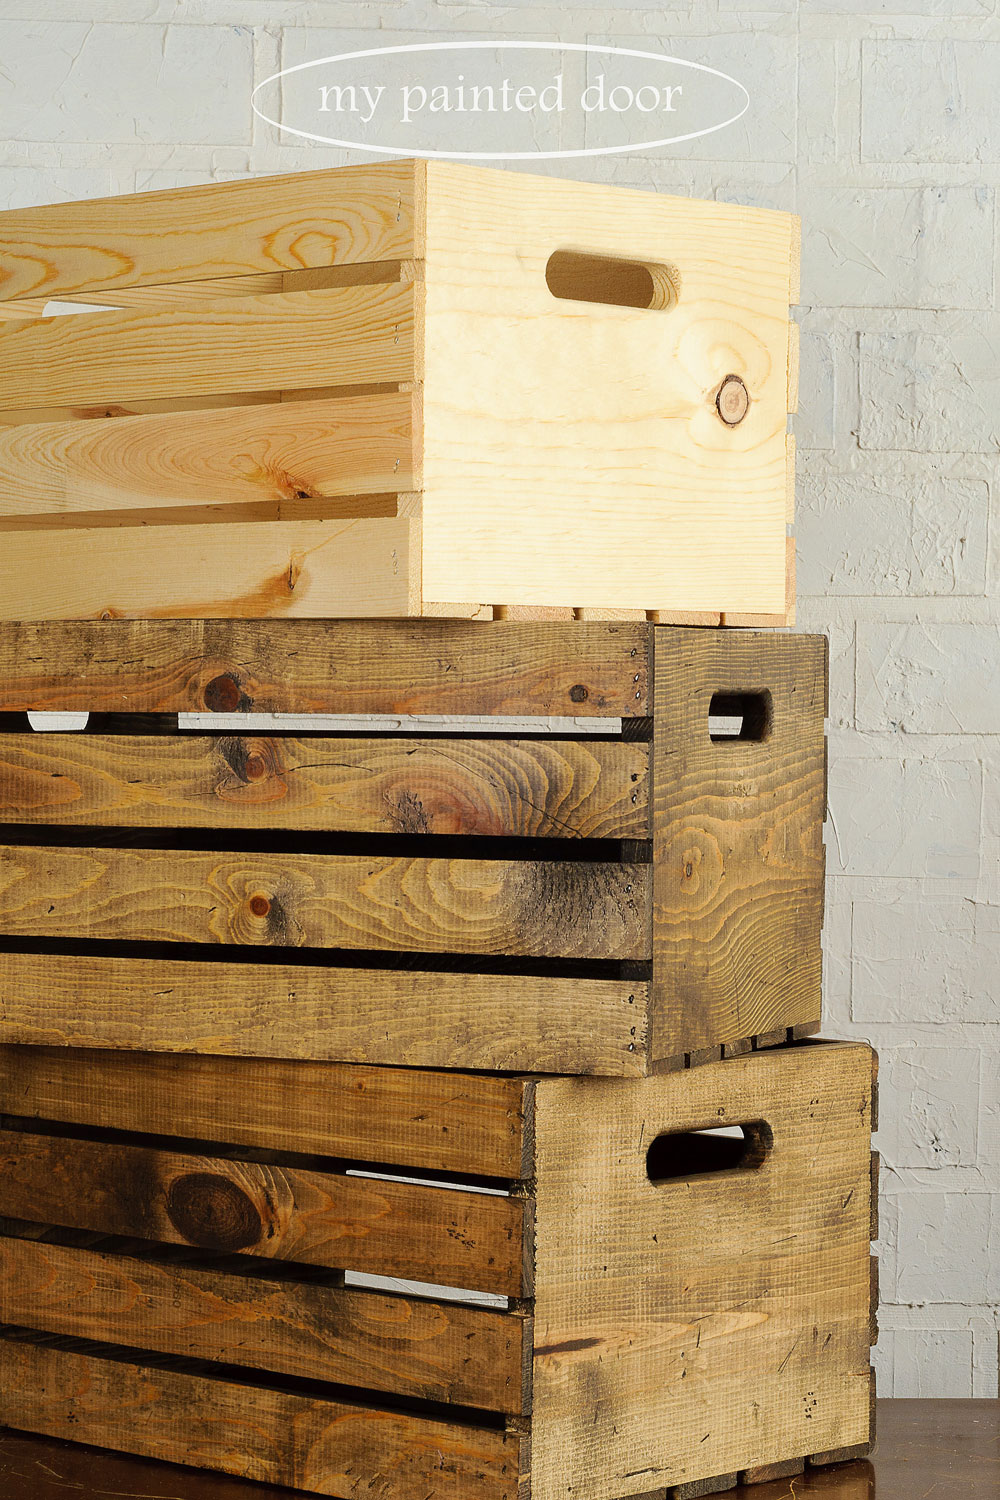 How to add character and an aged look to new wood using Miss Mustard Seed's Antiquing Wax - via My Painted Door (.com)